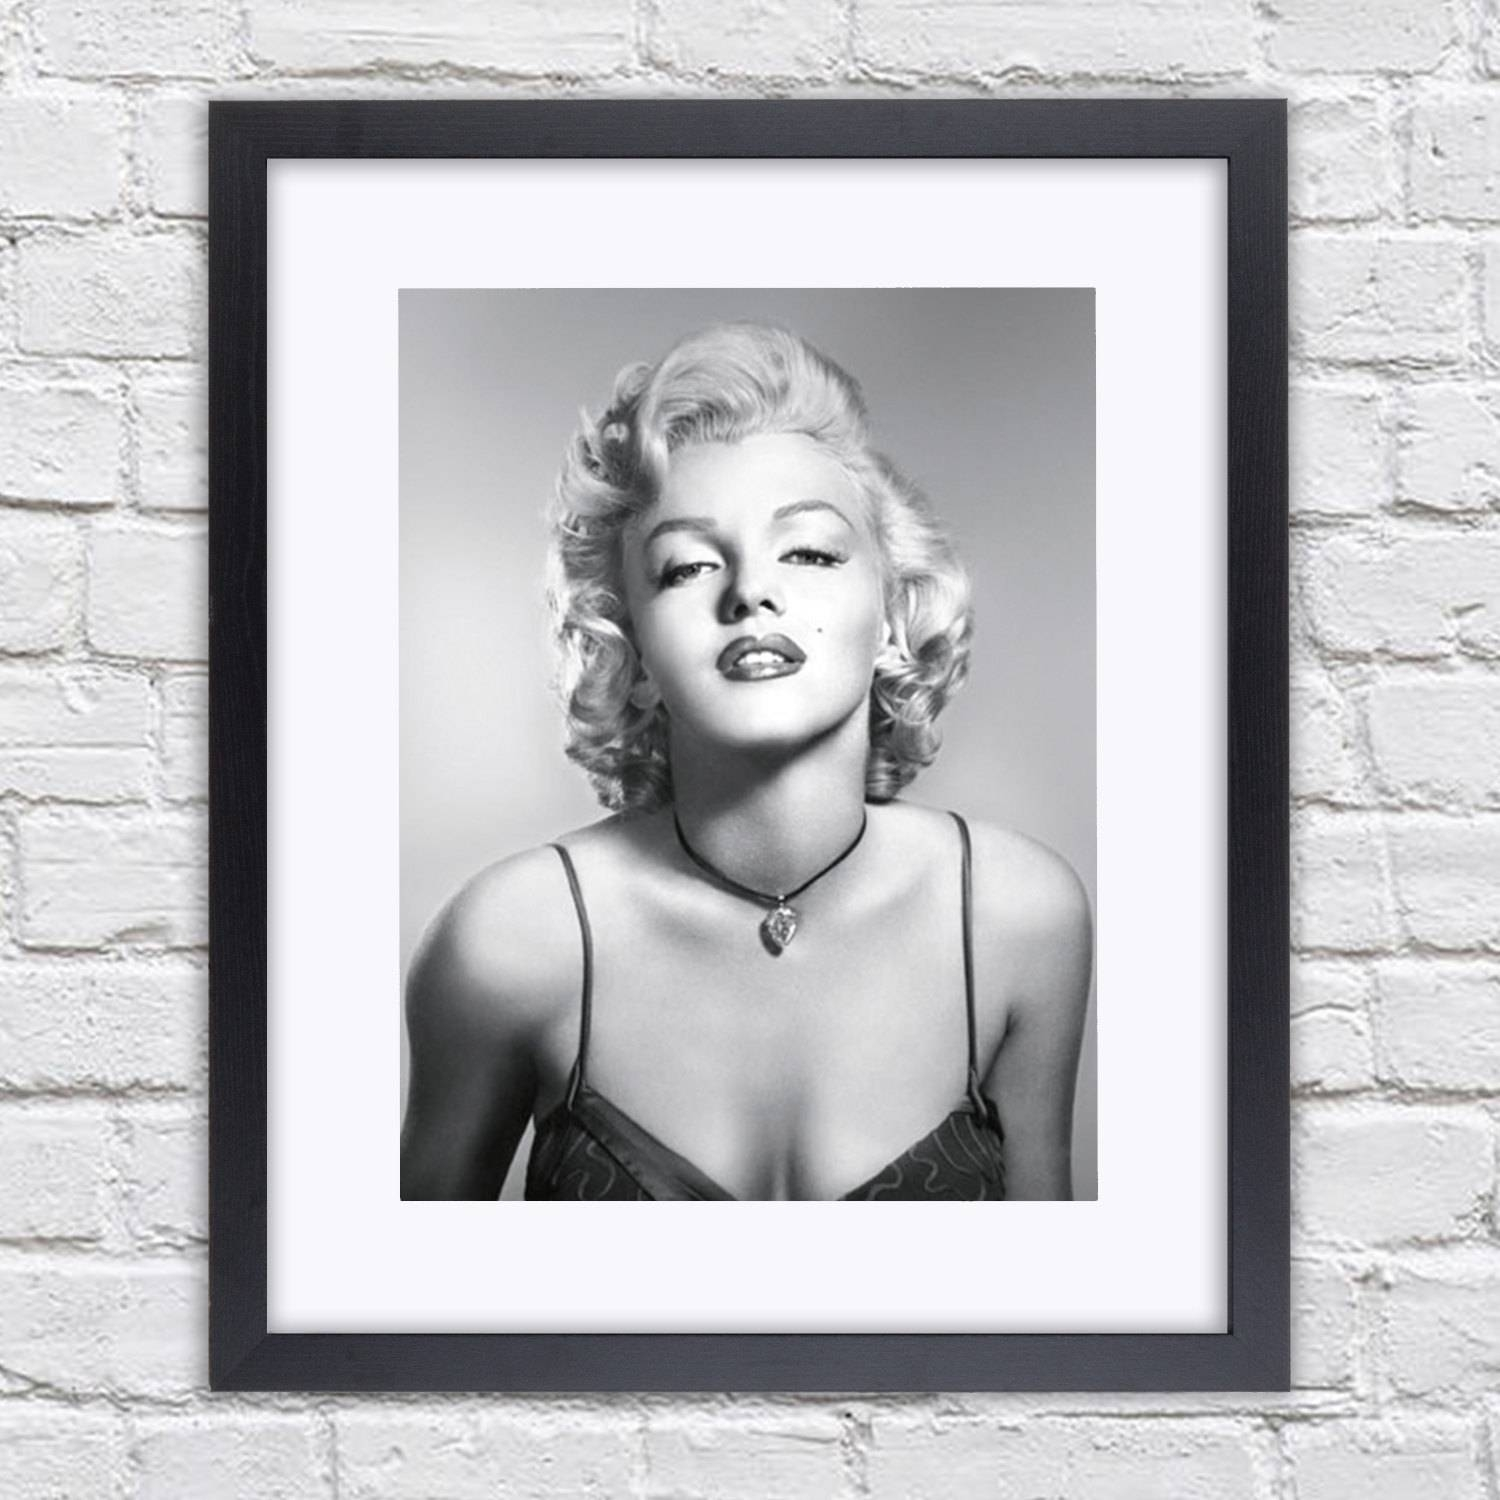 Marilyn Monroe – Diamond Necklace B/w – Mounted & Framed Poster Throughout Current Marilyn Monroe Framed Wall Art (View 14 of 22)